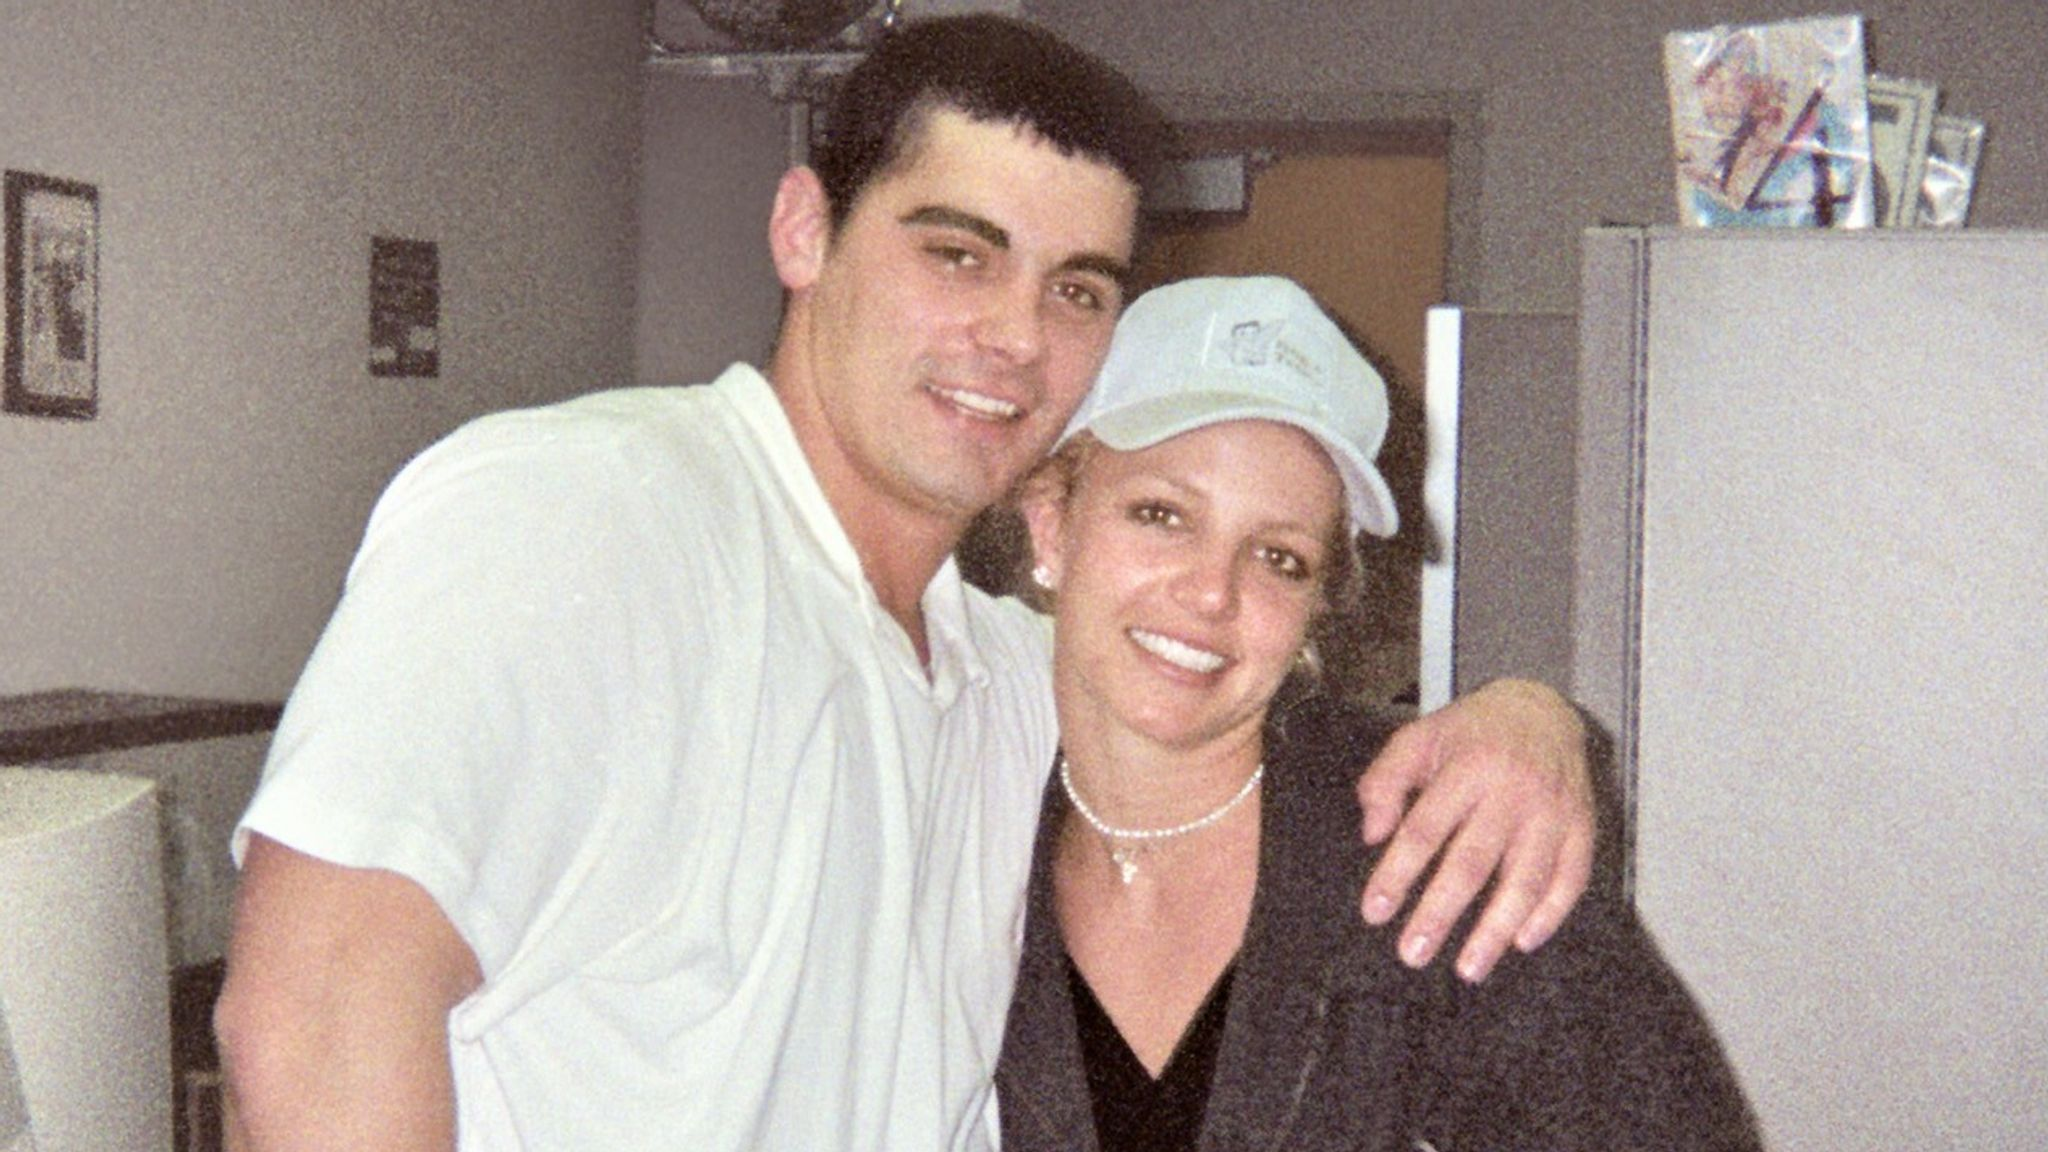 Britney Spears with husband Jason Alexander after getting married at the Little White Chapel in Las Vegas after their 4am wedding ceremony on January 3rd in 2004